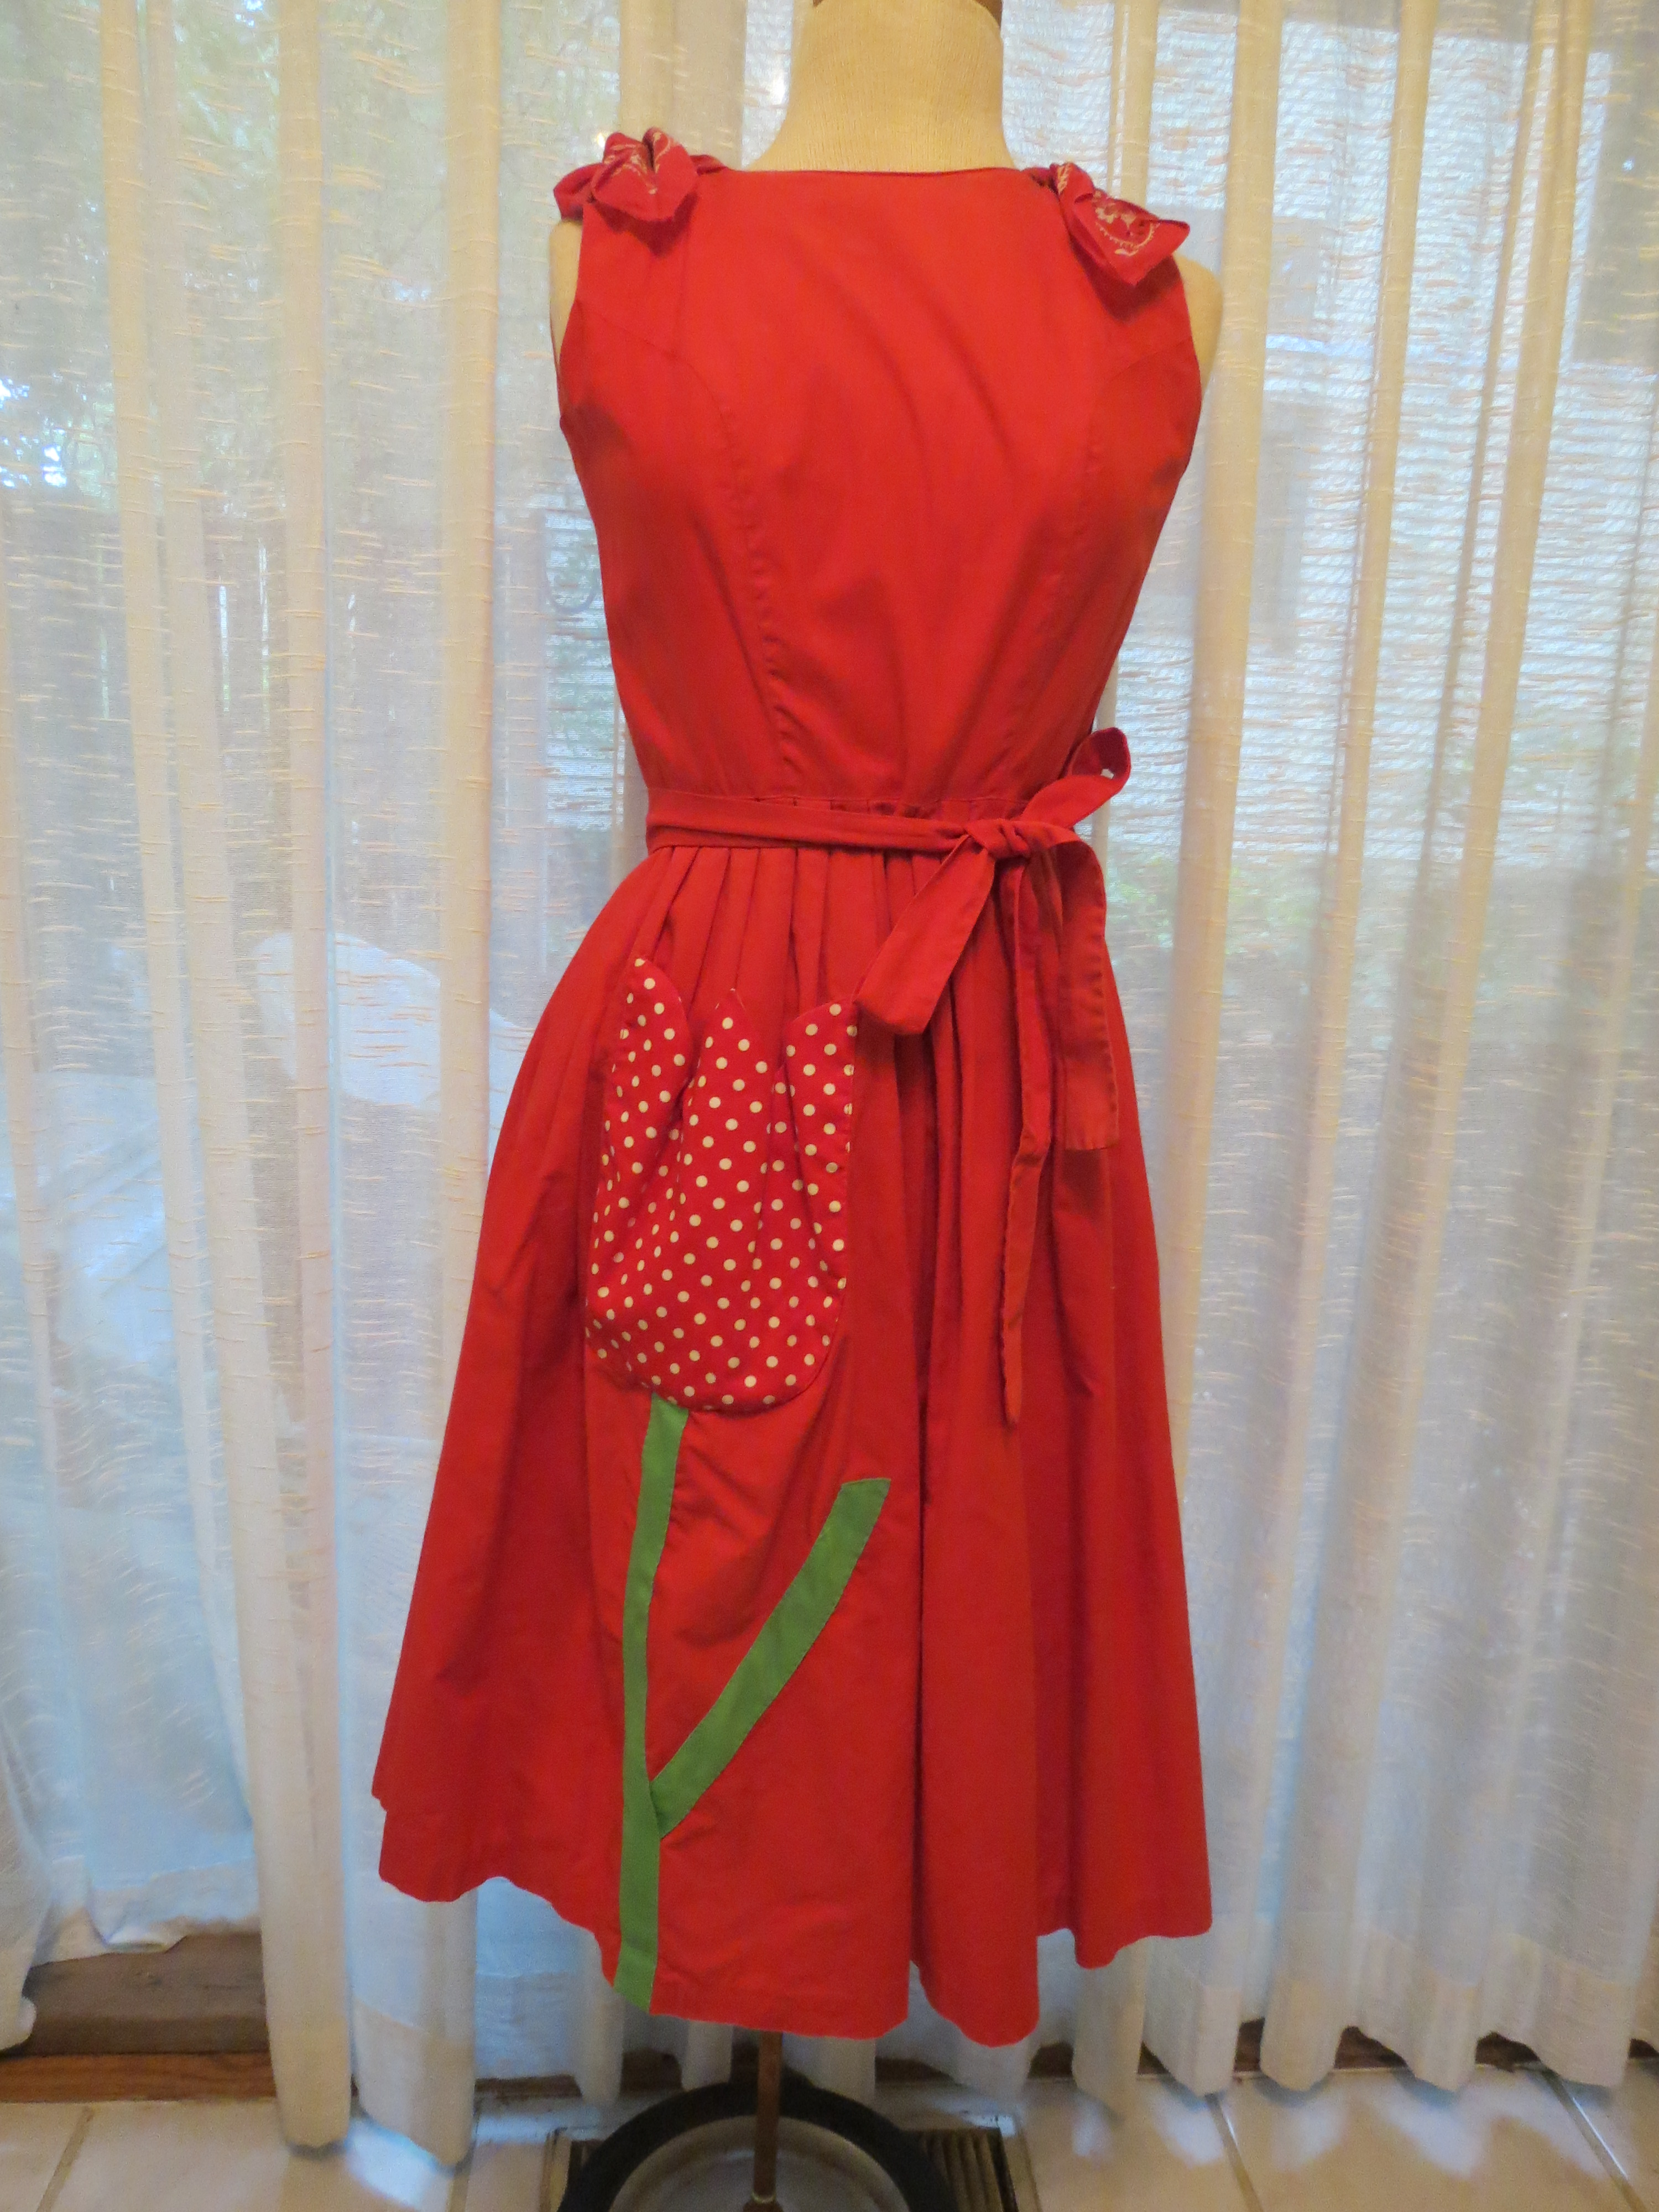 A FAVORITE TRUE VINTAGE DRESS FROM THE LATE '50S - EARLY '60'S BY SWIRL